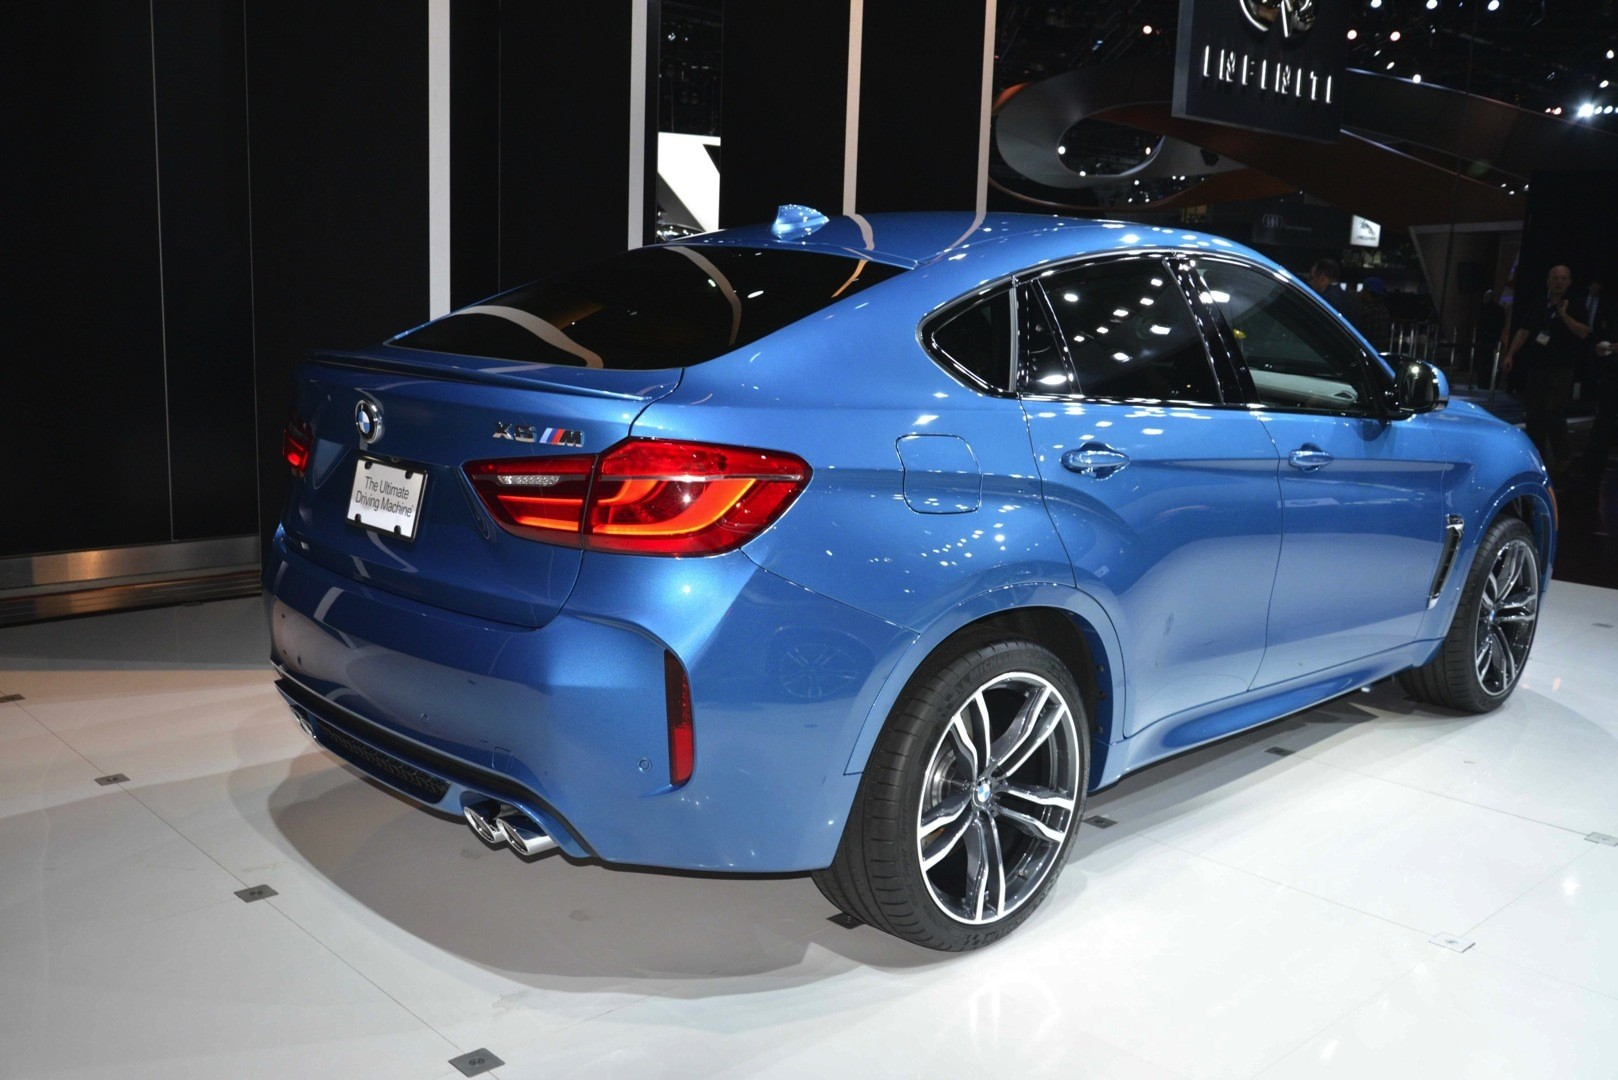 Bmw X5 M And X6 M Show Up In La With New Colors Live Photos Autoevolution